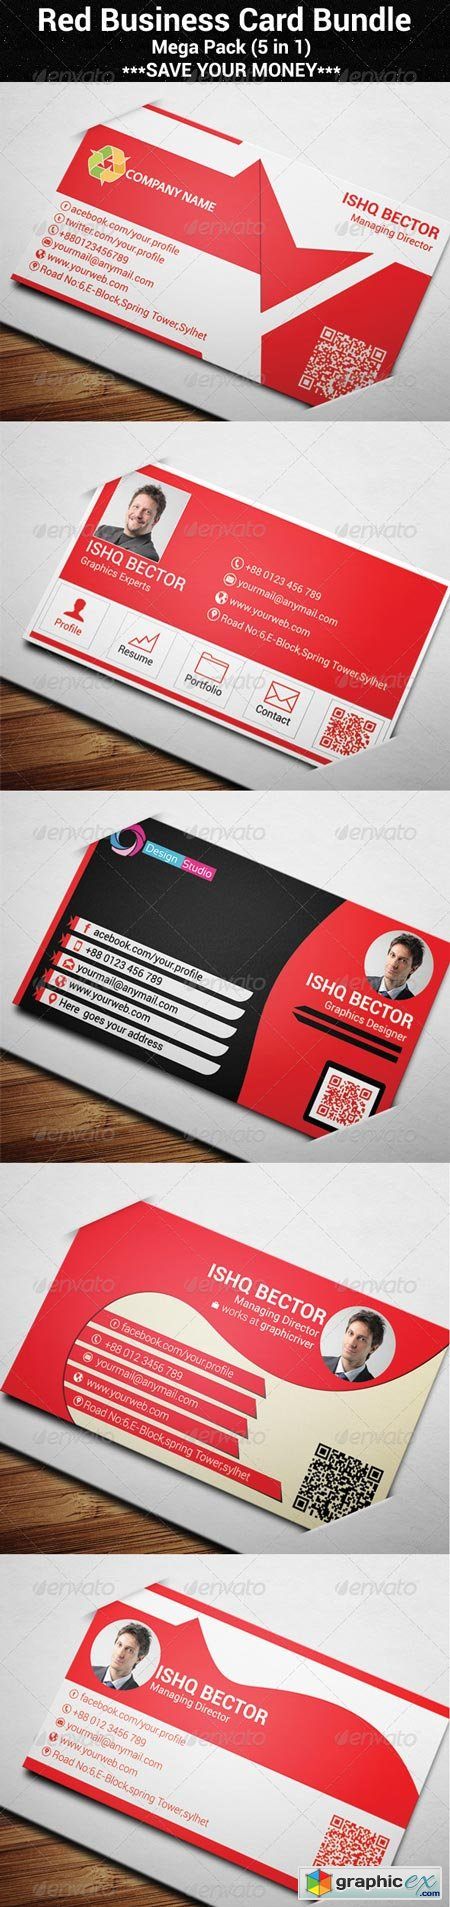 5 in 1 Red Business Card Bundle 6925926